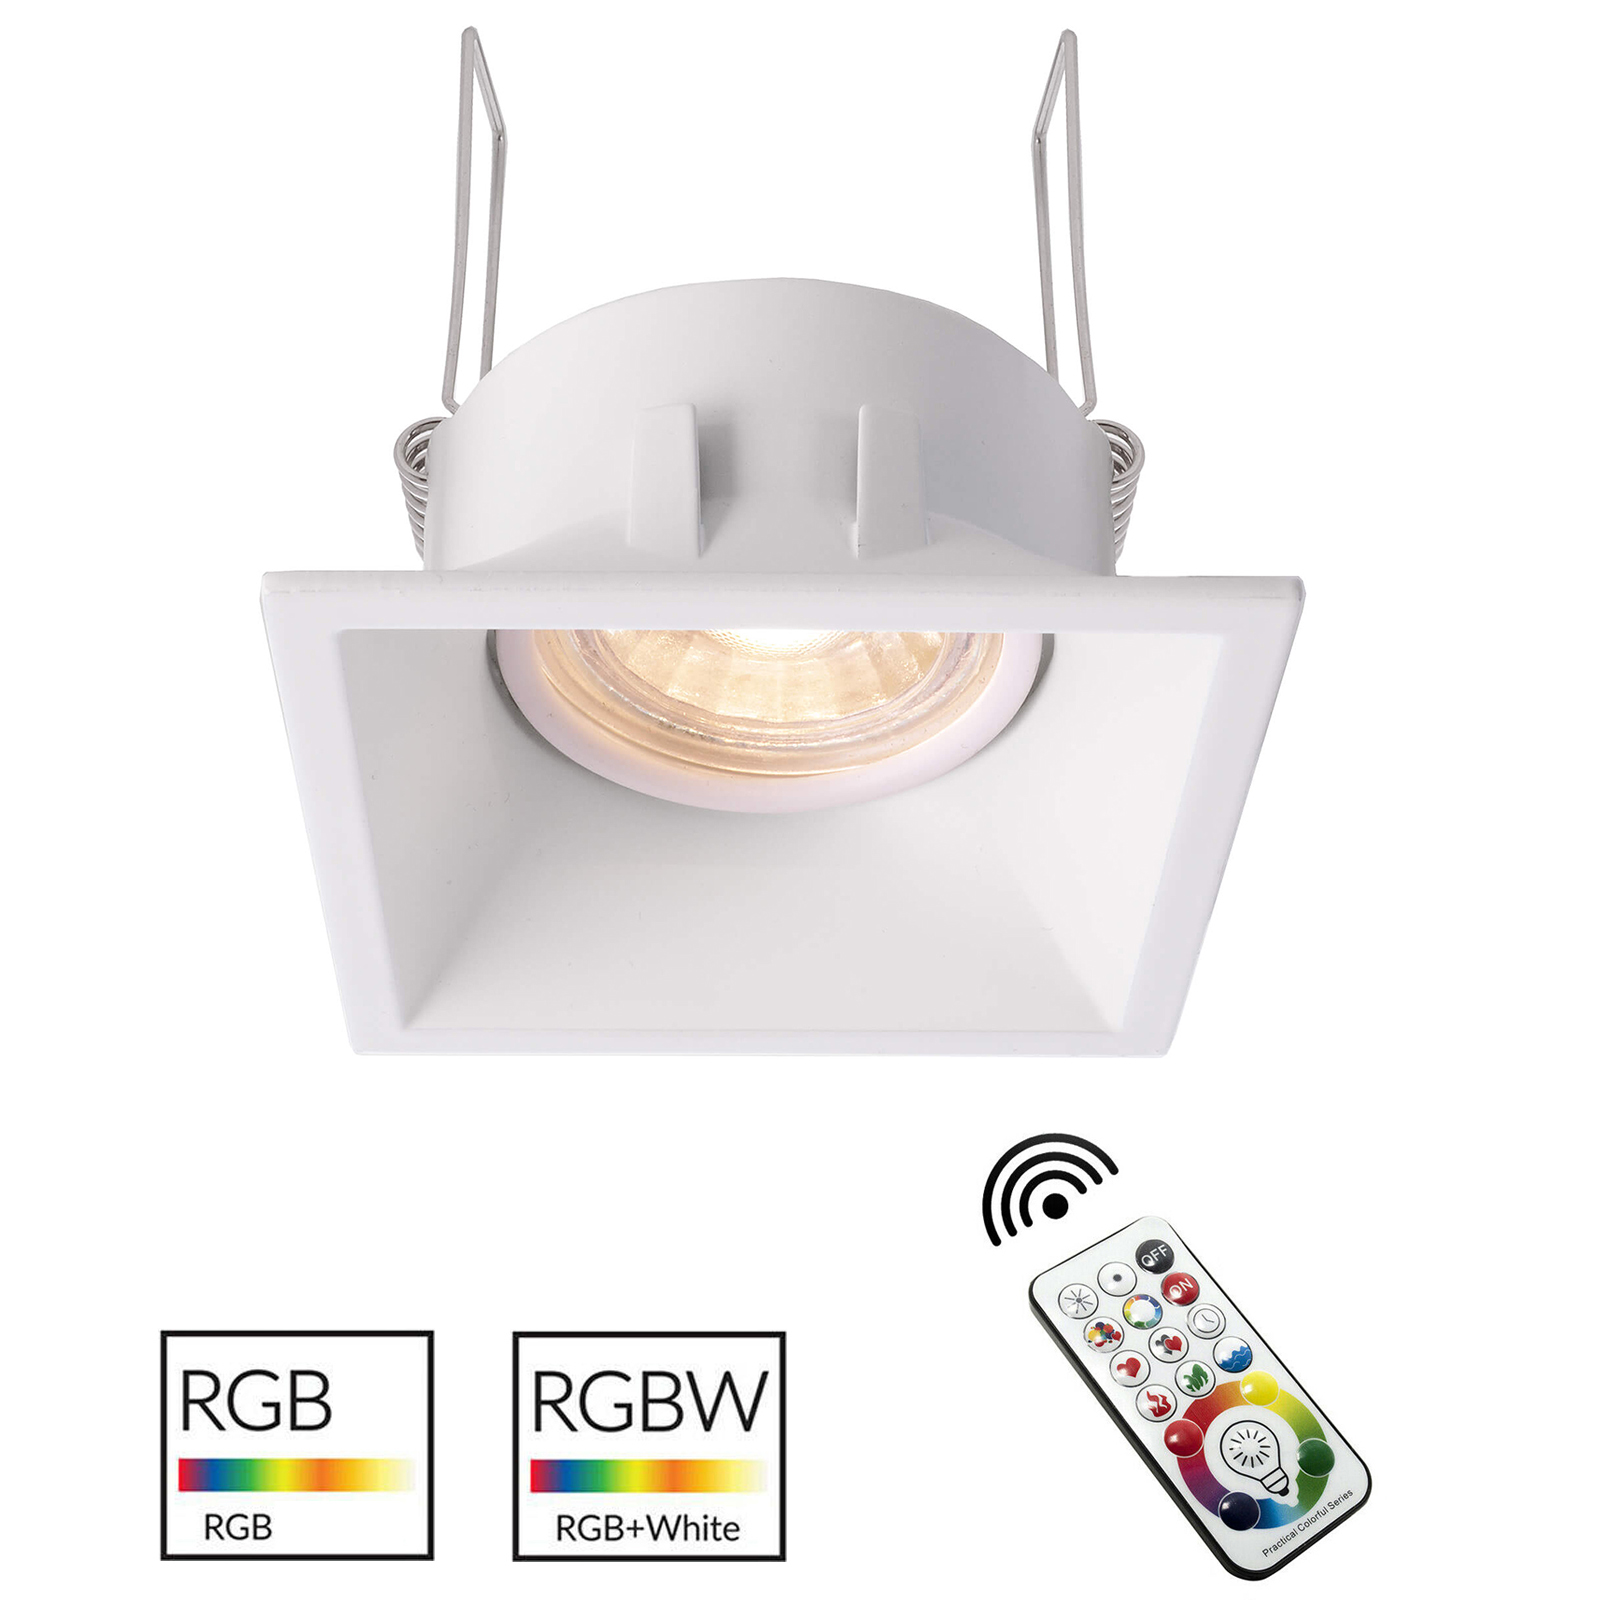 Spotlight white square color therapy interior recessed 8cm LED light GU10 RGB 6000K